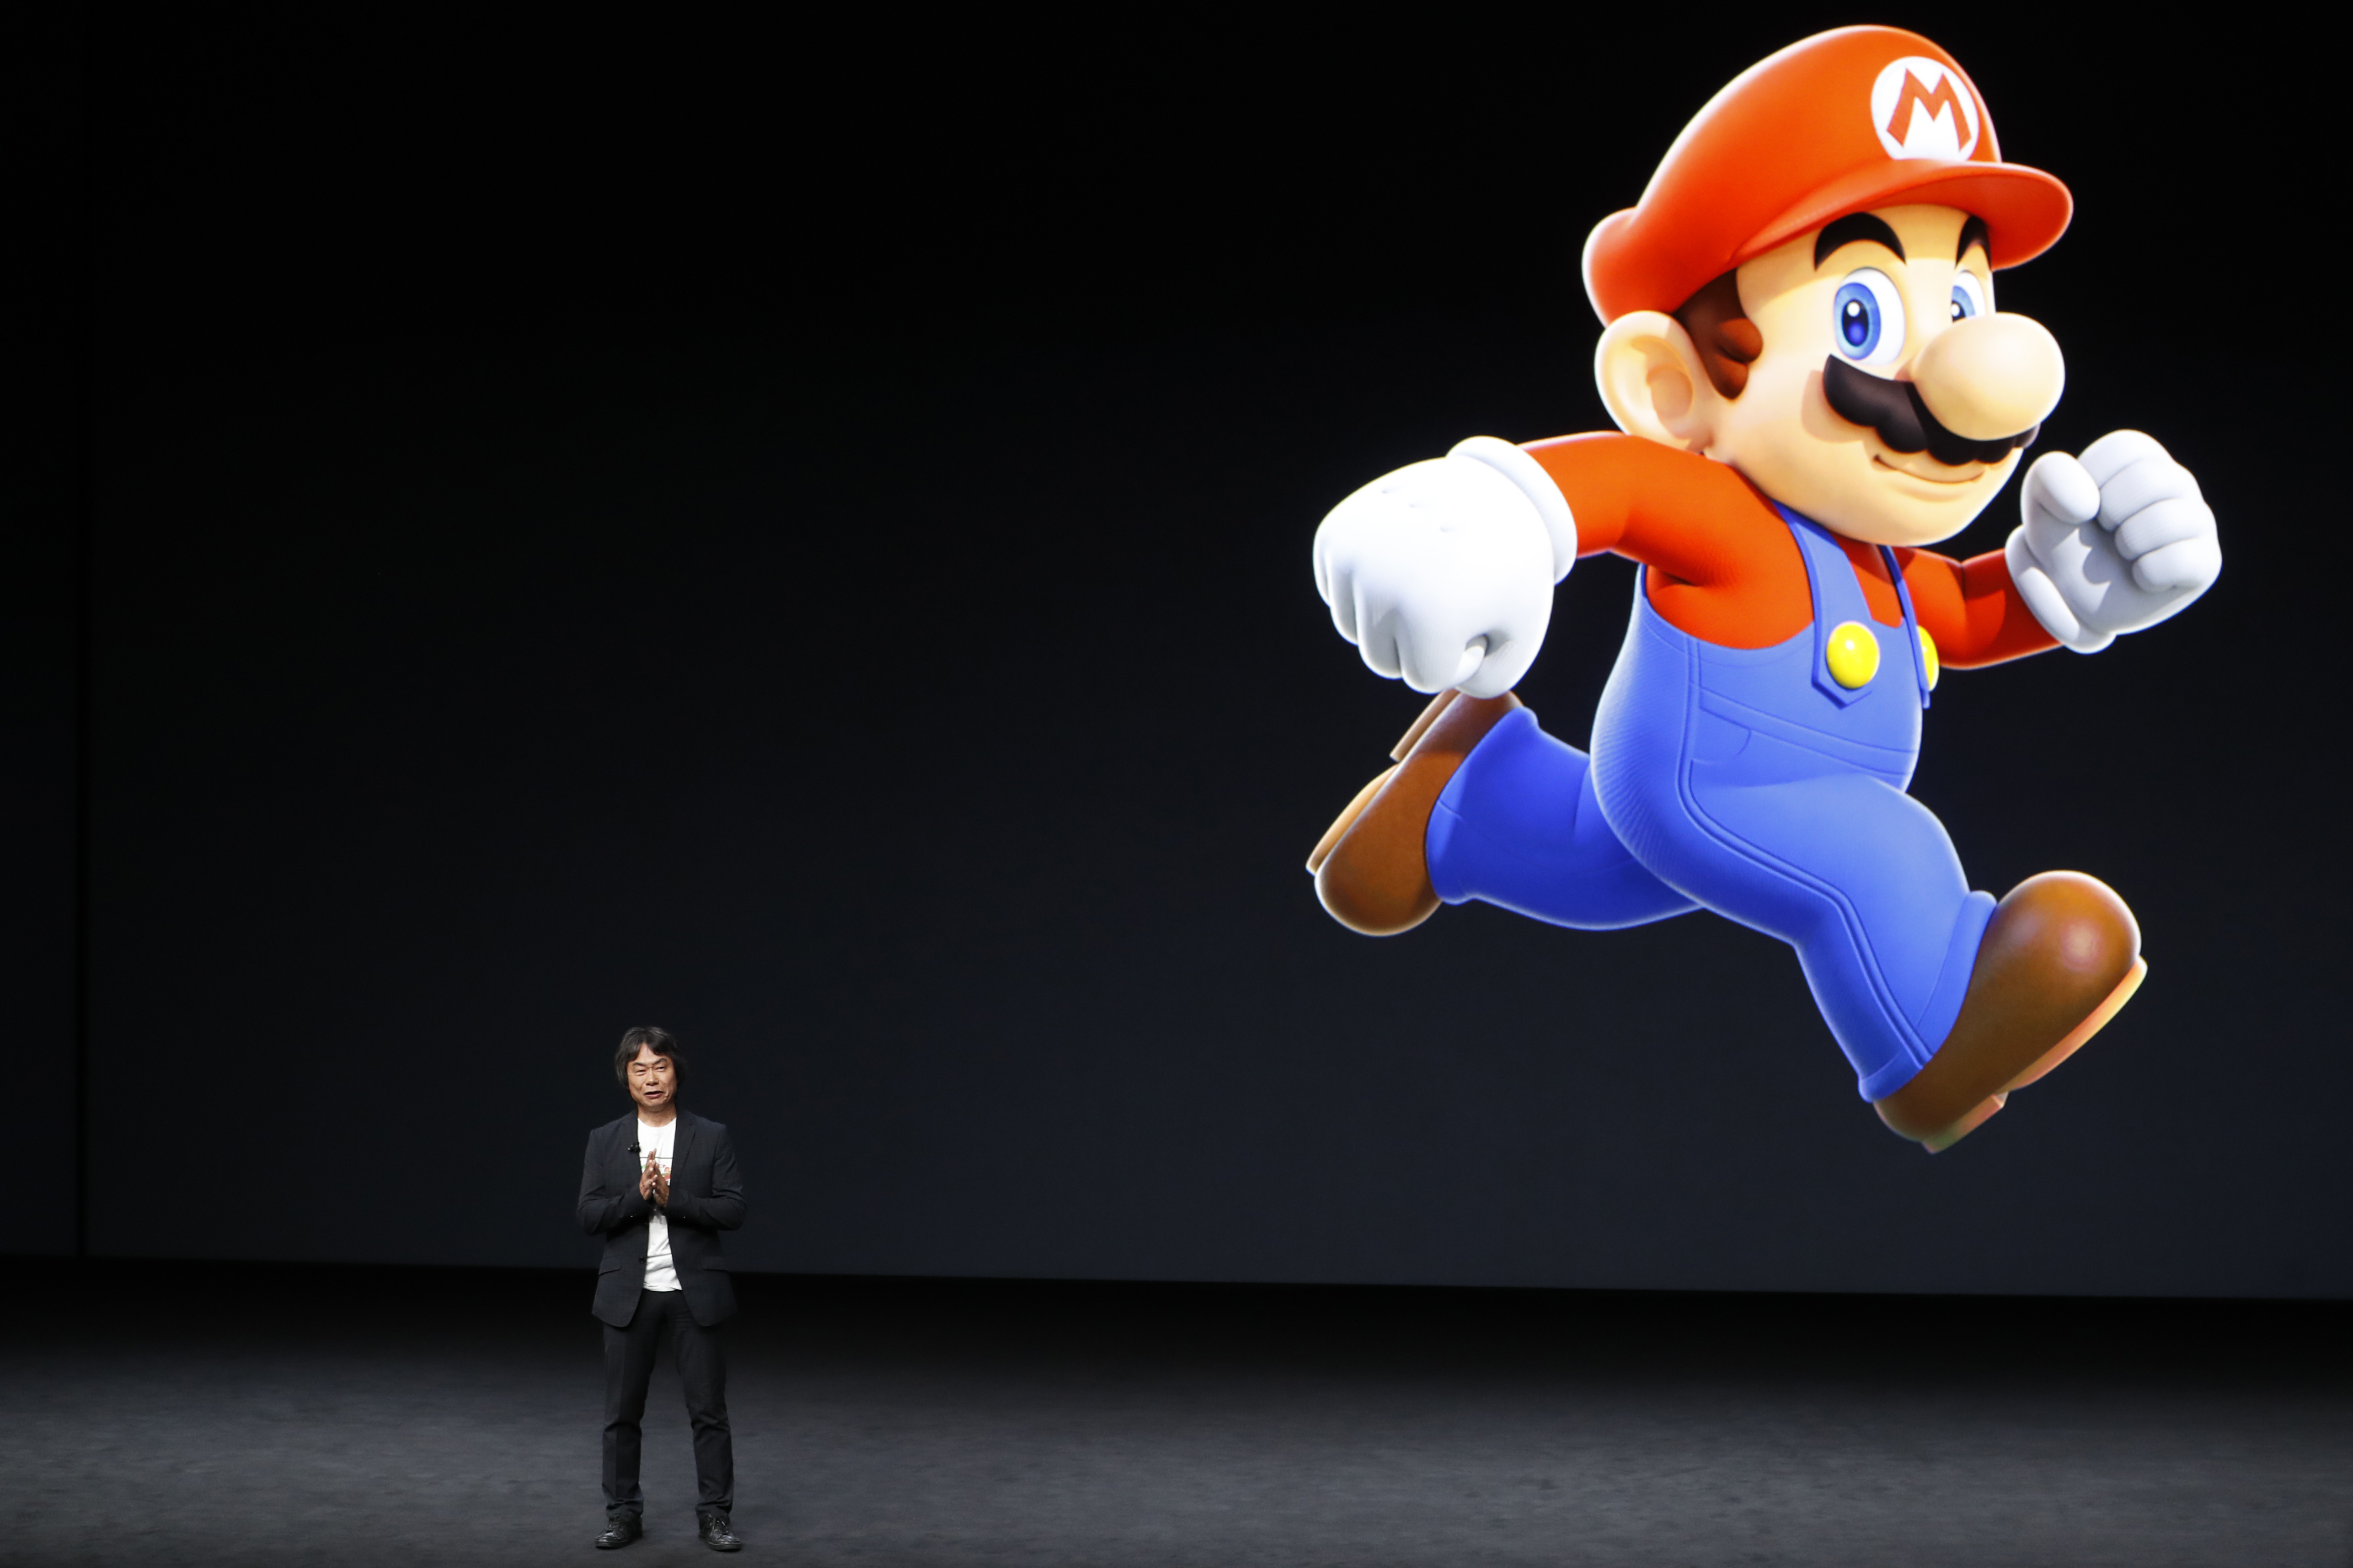 Shigeru Miyamoto speaks on a stage with a giant Mario running in the backround